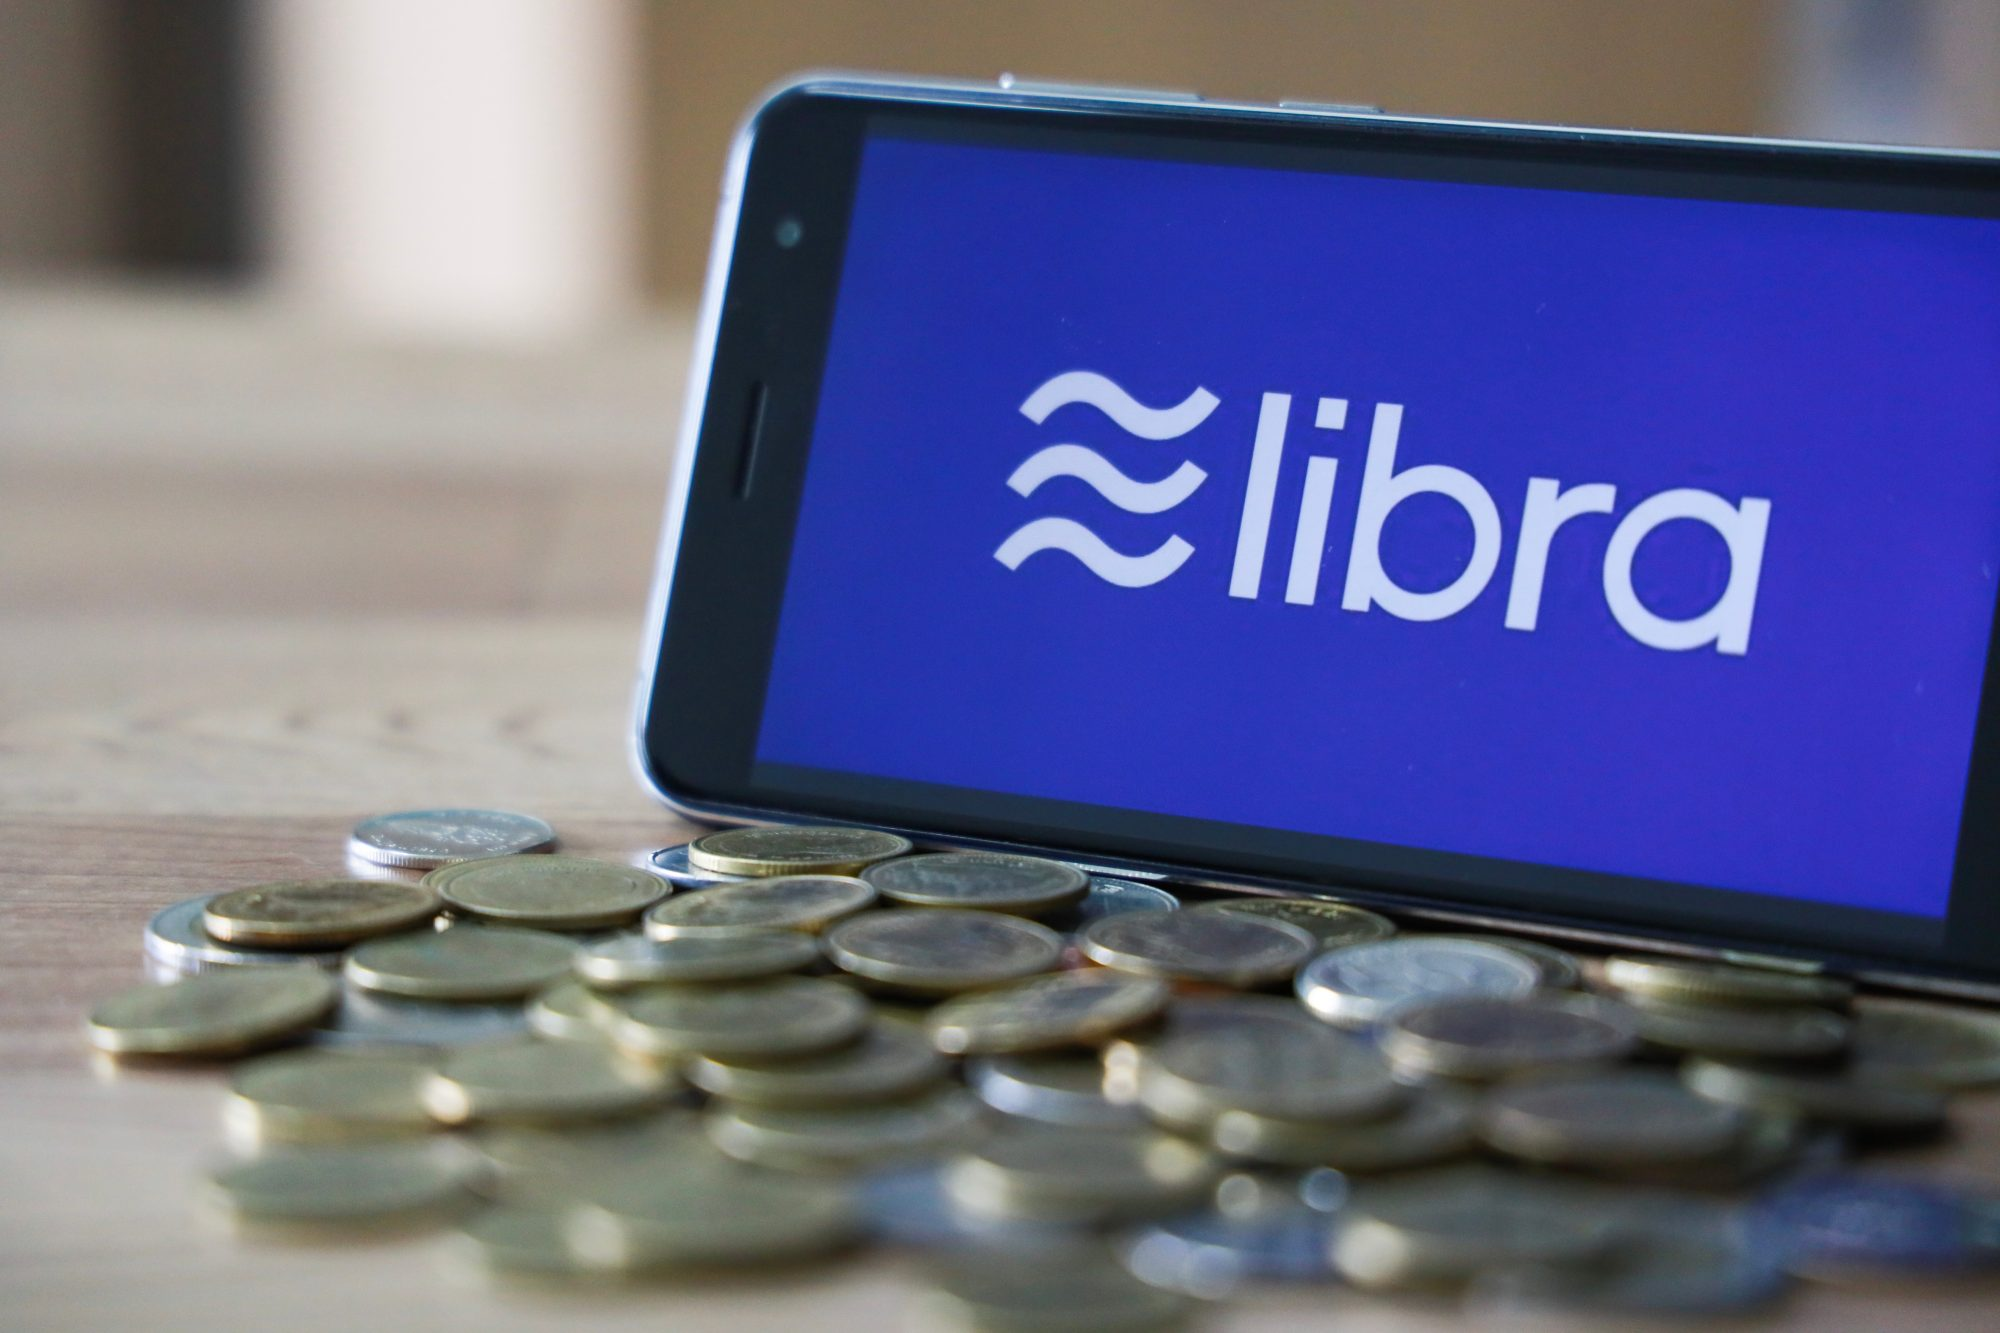 Coinbase CEO Expresses Support for Facebook's Libra Project